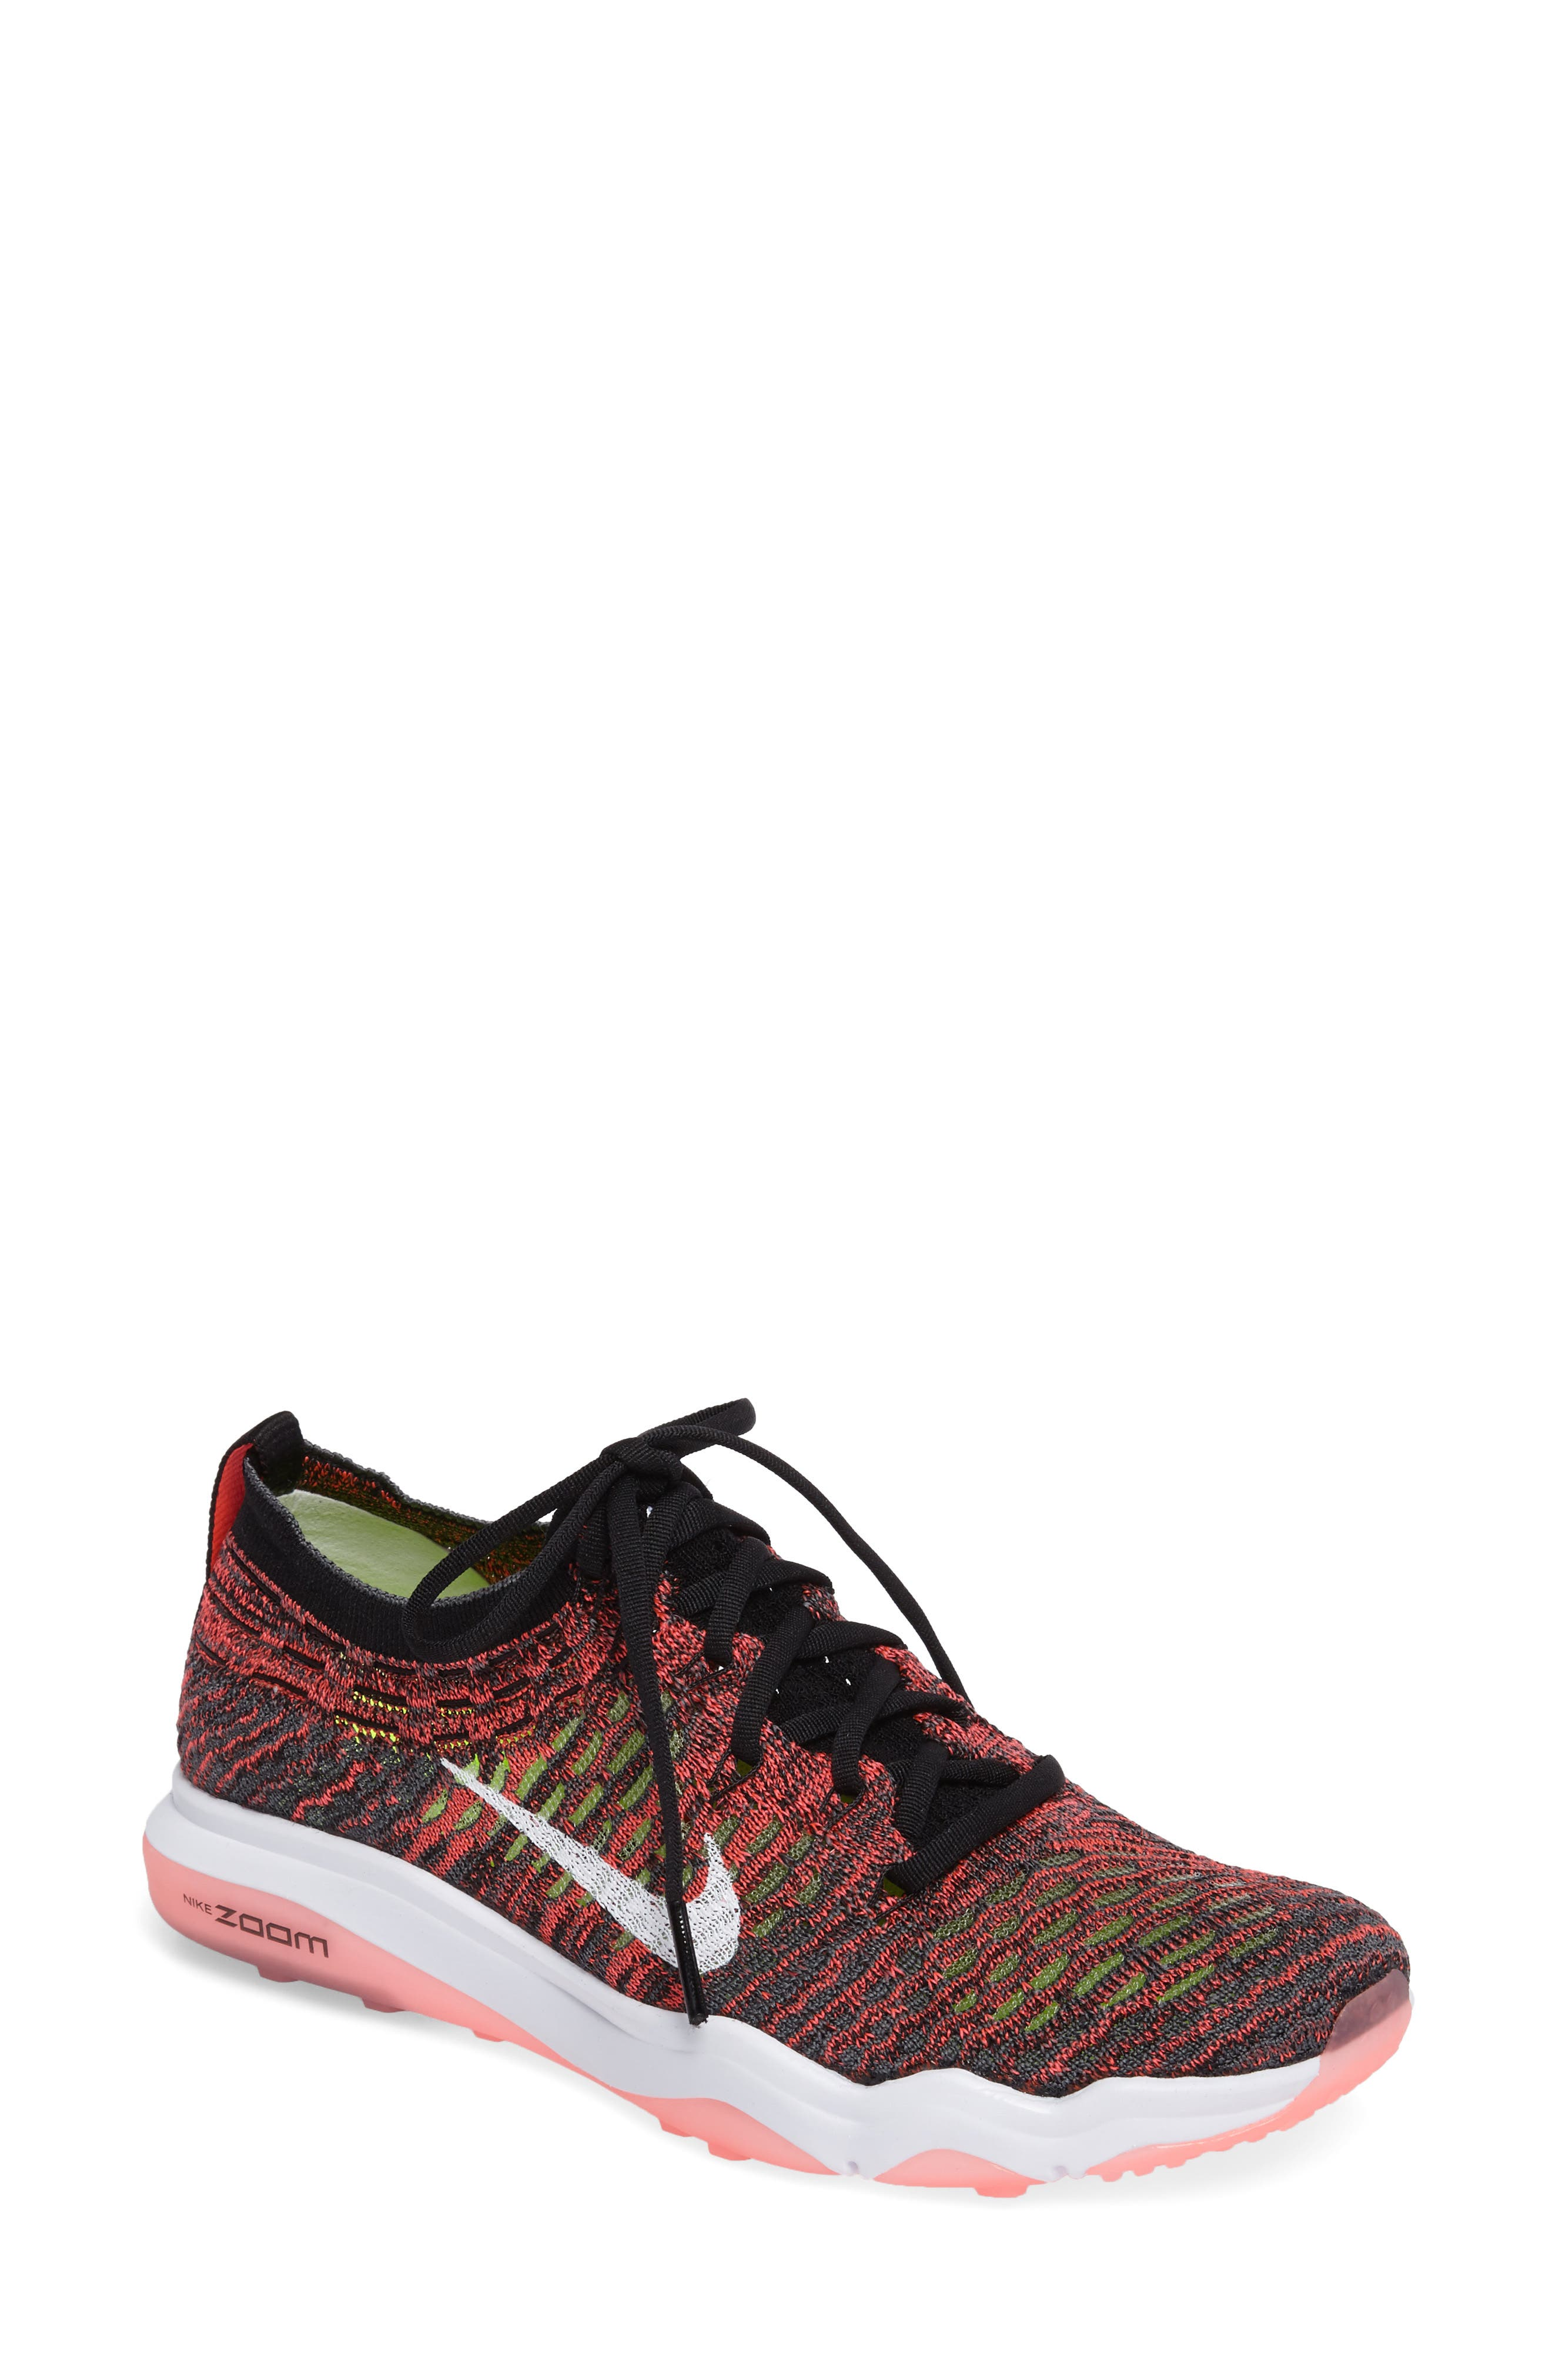 Air Zoom Fearless Flyknit Training Shoe,                         Main,                         color,